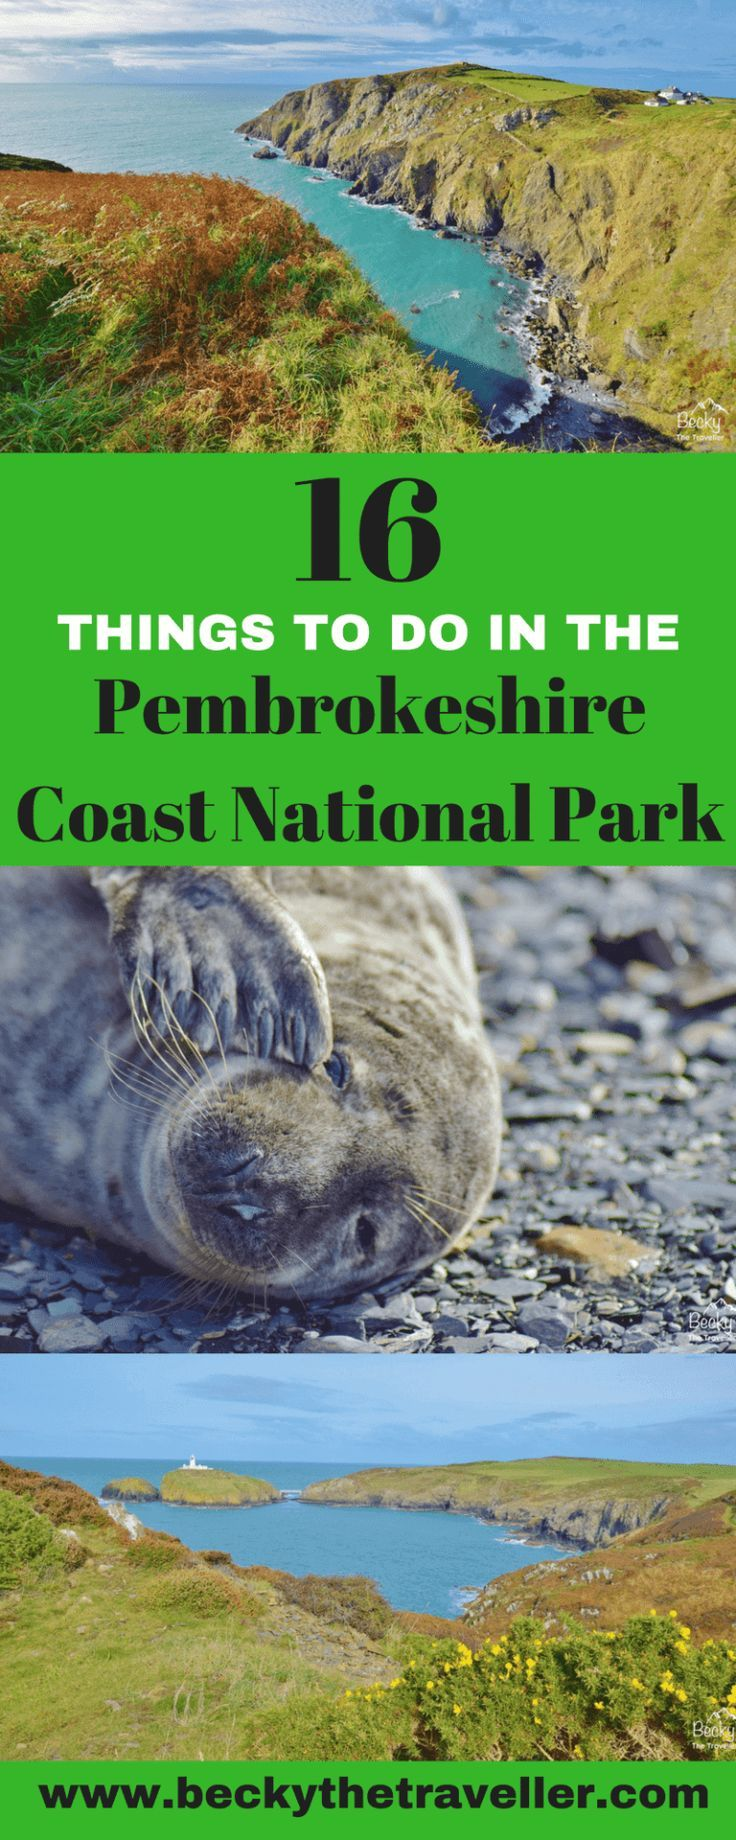 16 things to do in the Pembrokeshire Coast National Park. Are you looking for things to do on your visit to the Pembrokeshire Coast? Here's my ultimate list of things to do whilst you are here. Includes hiking, wildlife, nature and lots more ideas. Places to visit in Pembrokeshire | Things to do in Pembrokeshire | Visit Pembrokeshire | Visit Wales | UK | United Kingdom